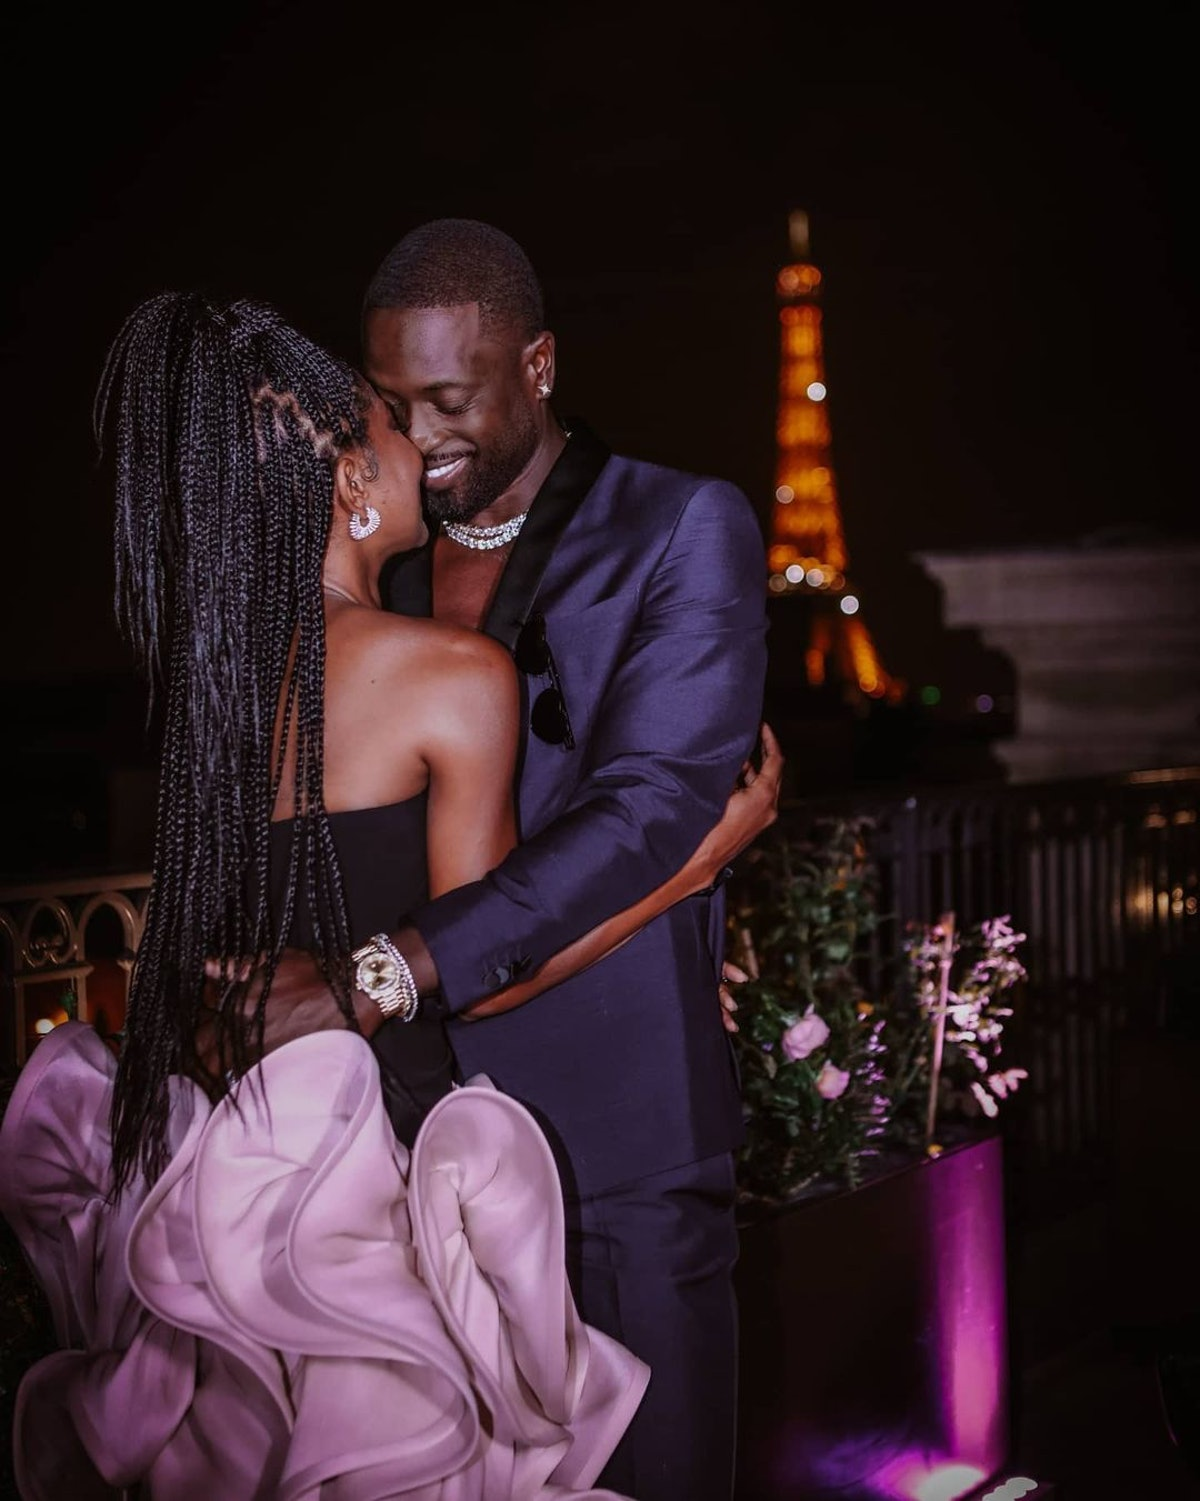 Gabrielle Union and Dwyane Wade embrace in Paris